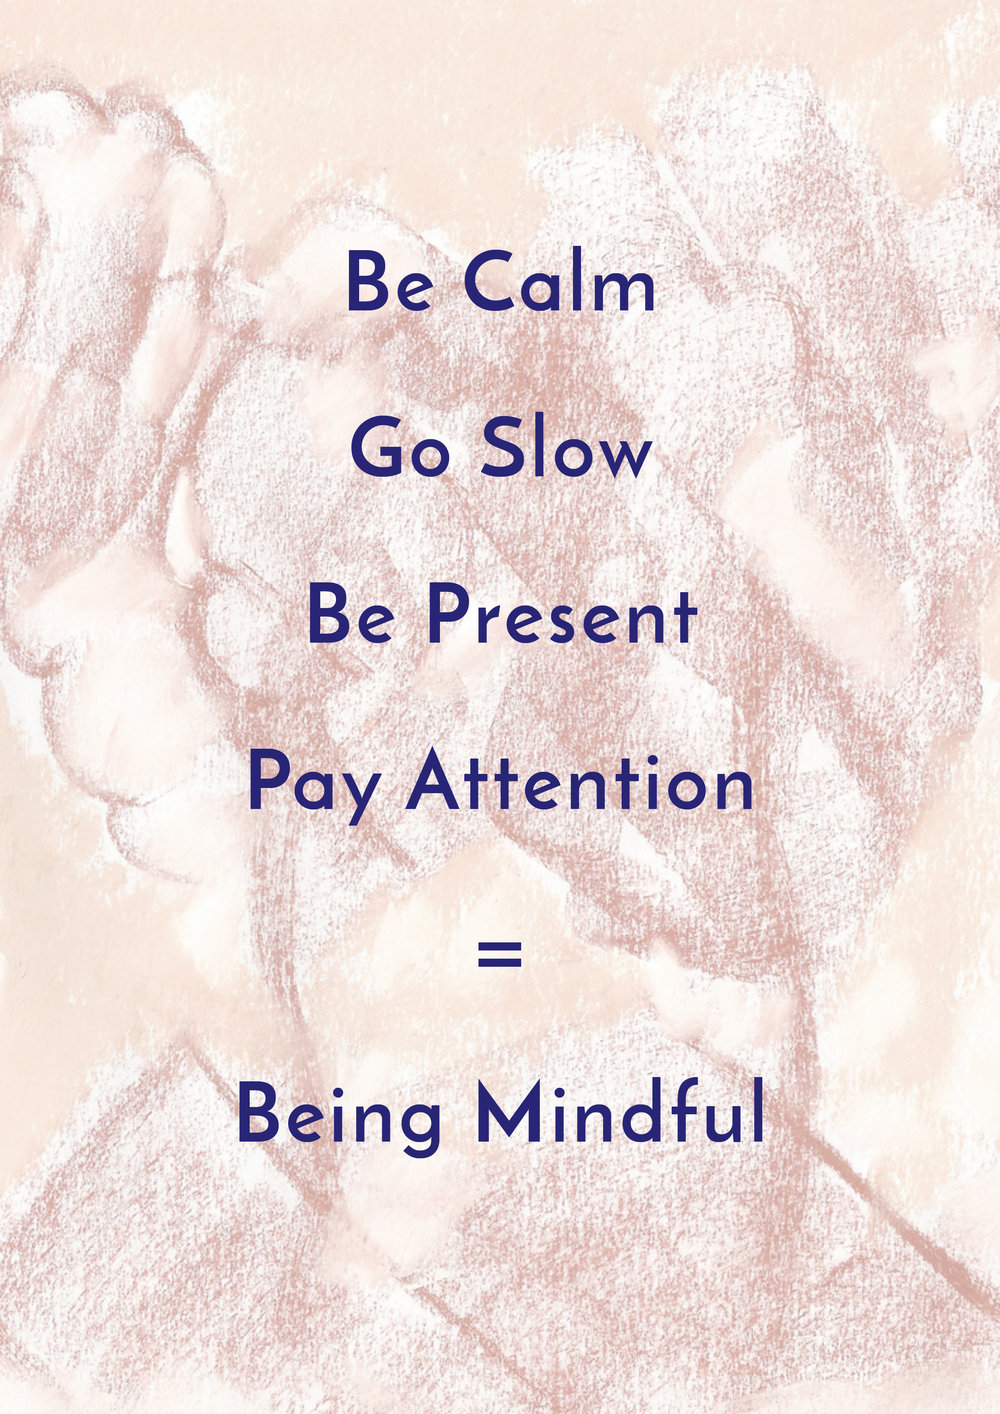 BEING MINDFUL POSTER_image full bleed.jpg